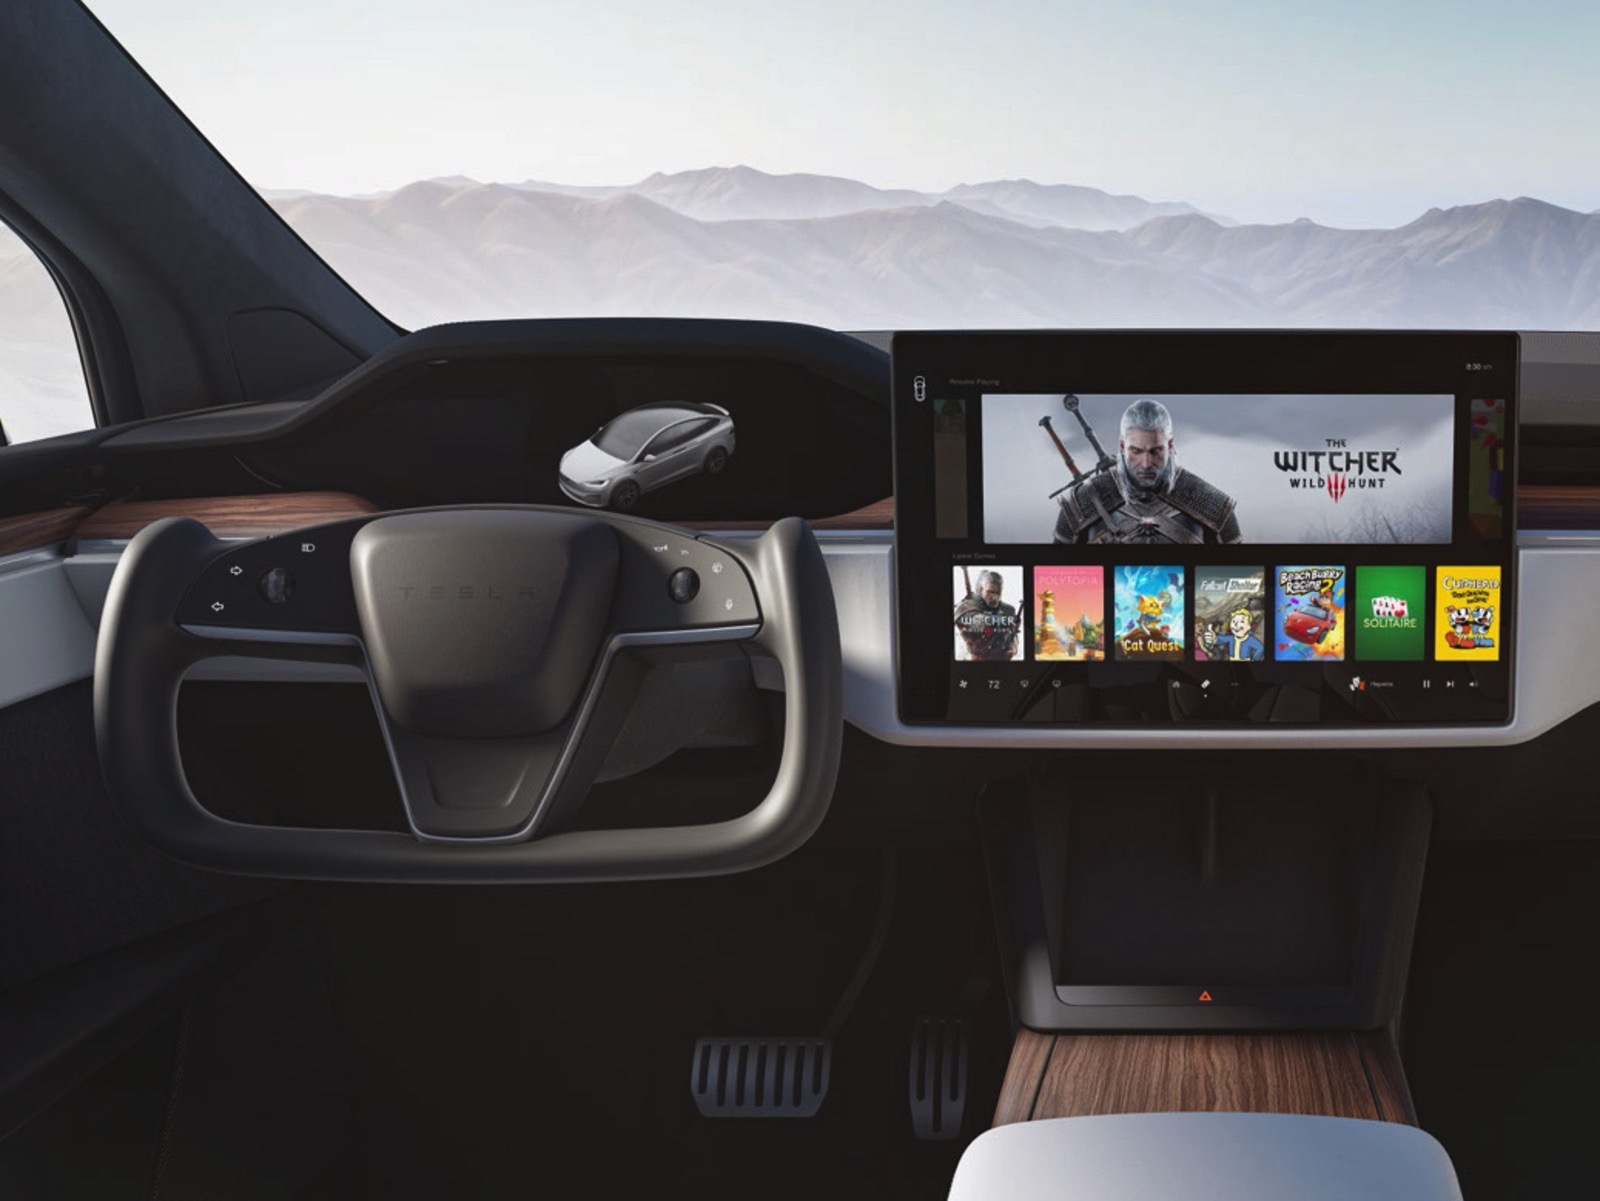 Today's headlines: Tesla shows off the $130,000 Model S Plaid's performance, Microsoft is making Xbox video game streaming sticks and FromSoftware, and George R.R.